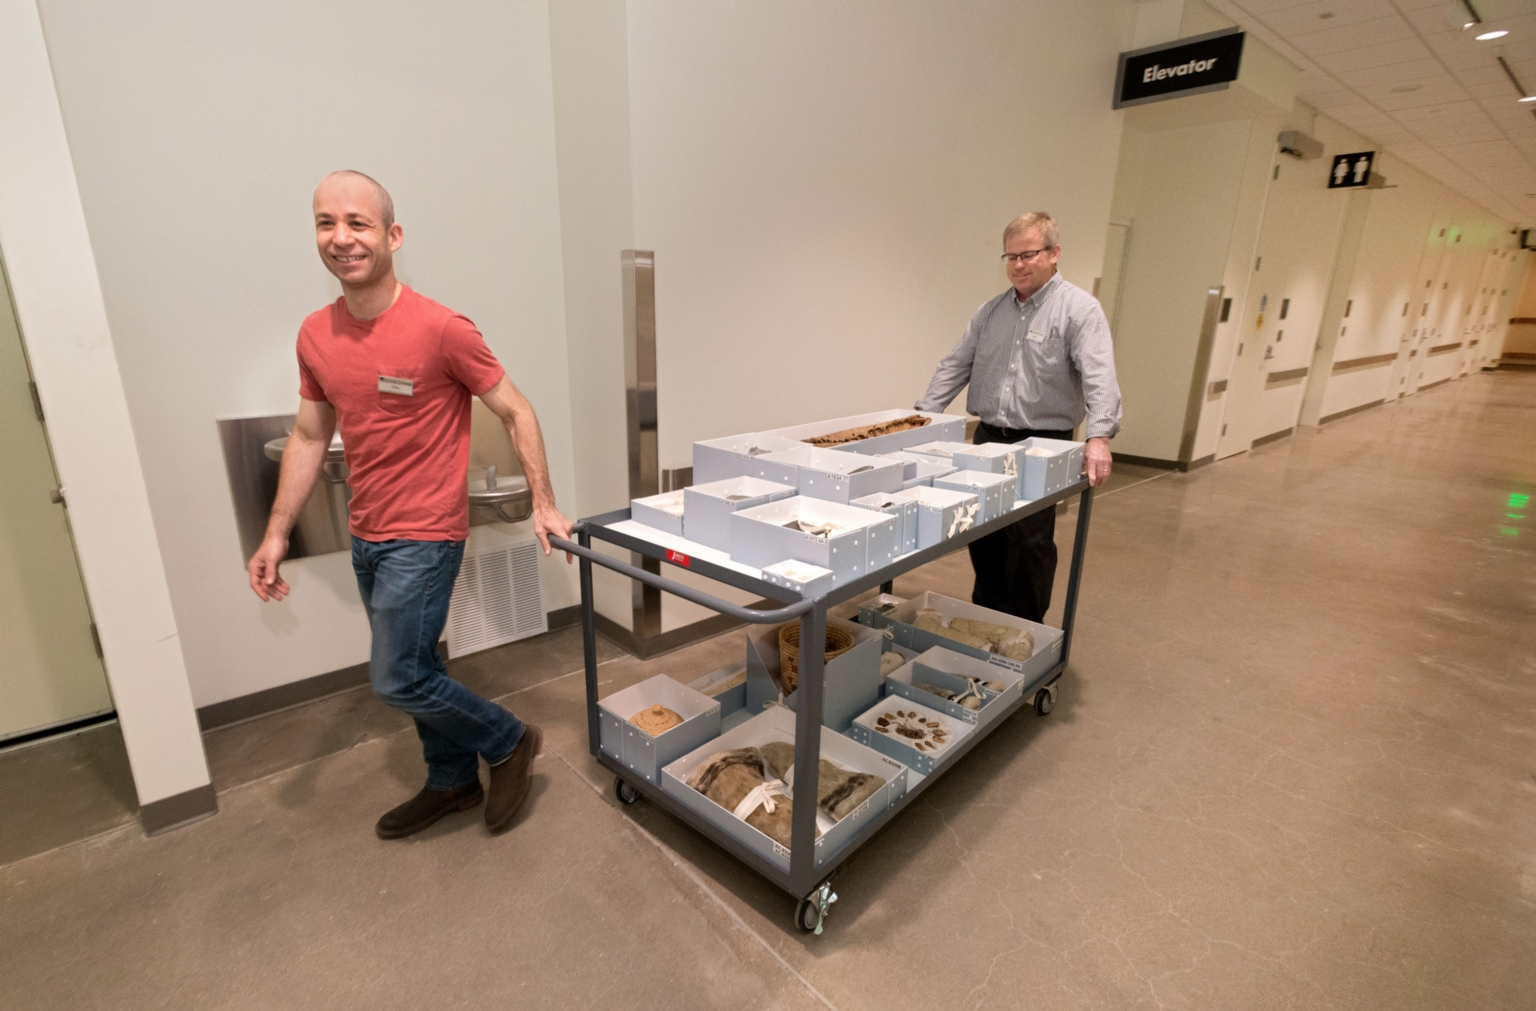 Anthropology curators move the collection